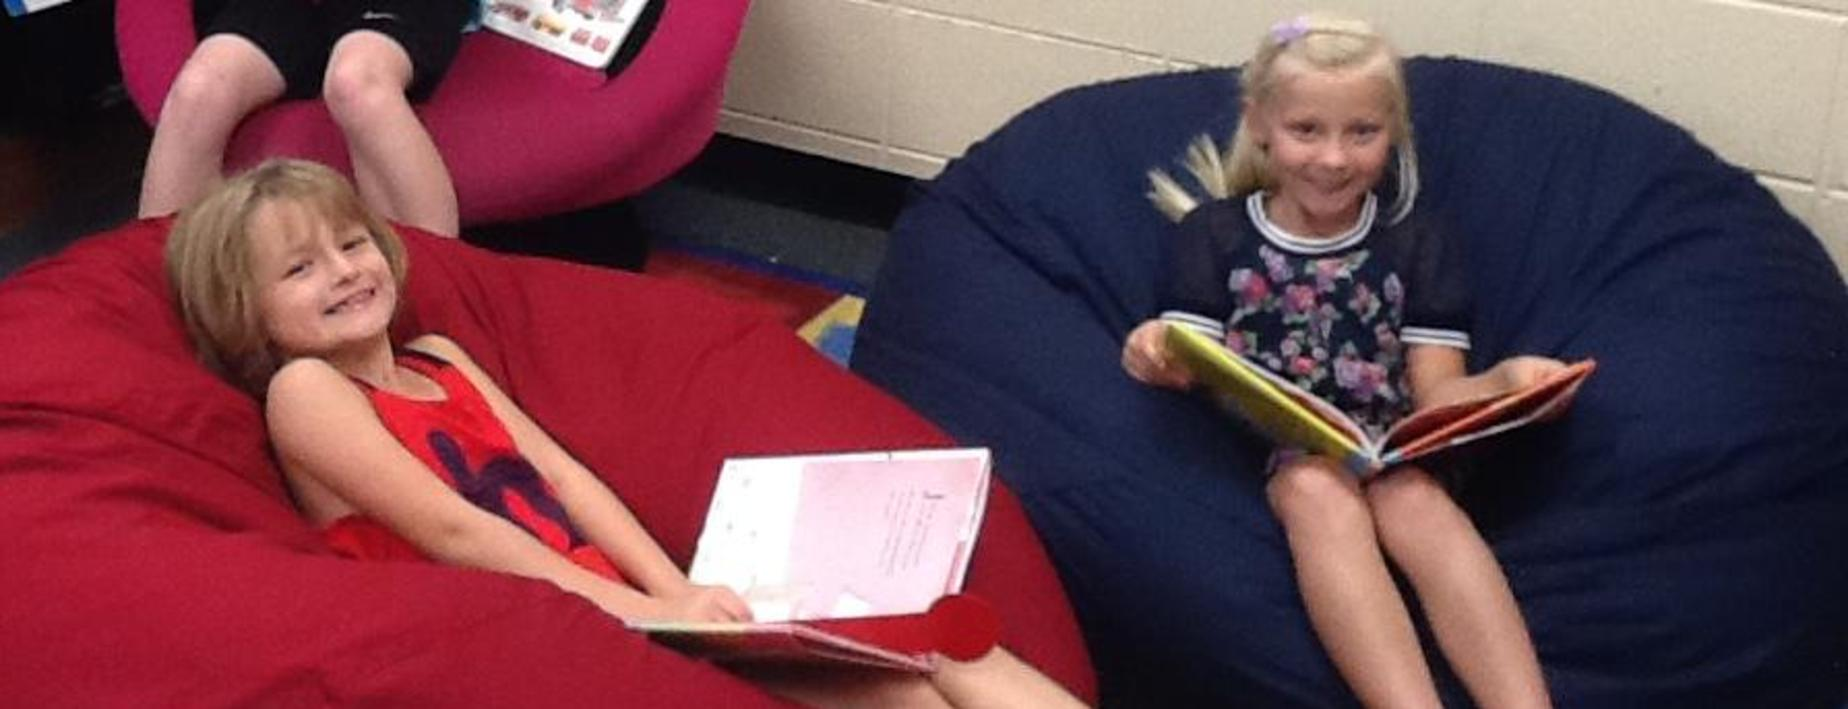 Relaxing and reading in the library